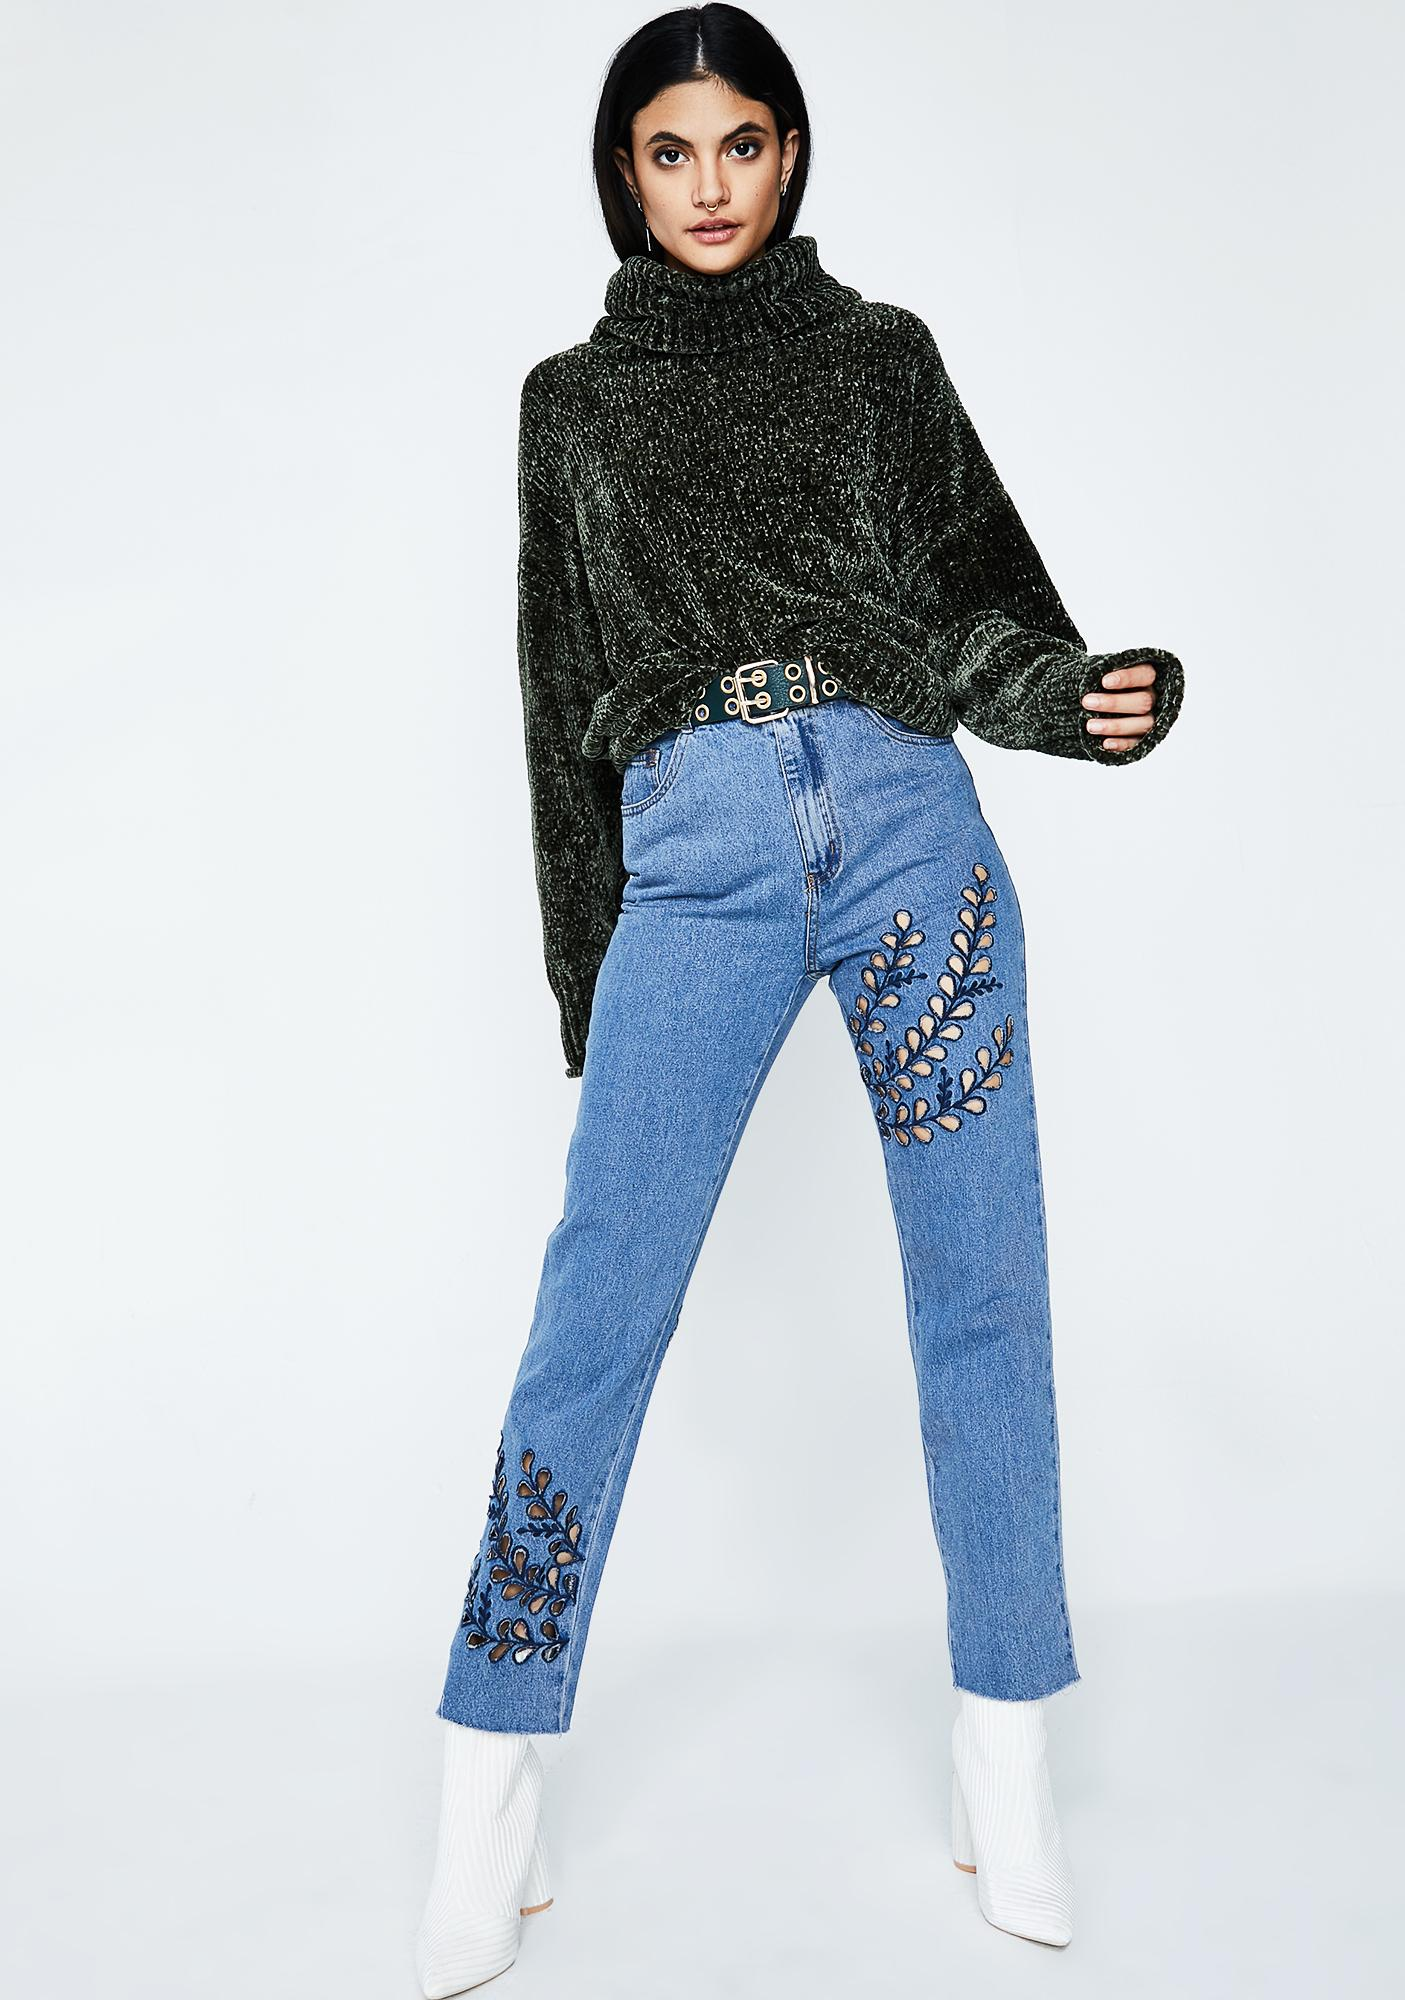 Spread The Word Cut-Out Jeans